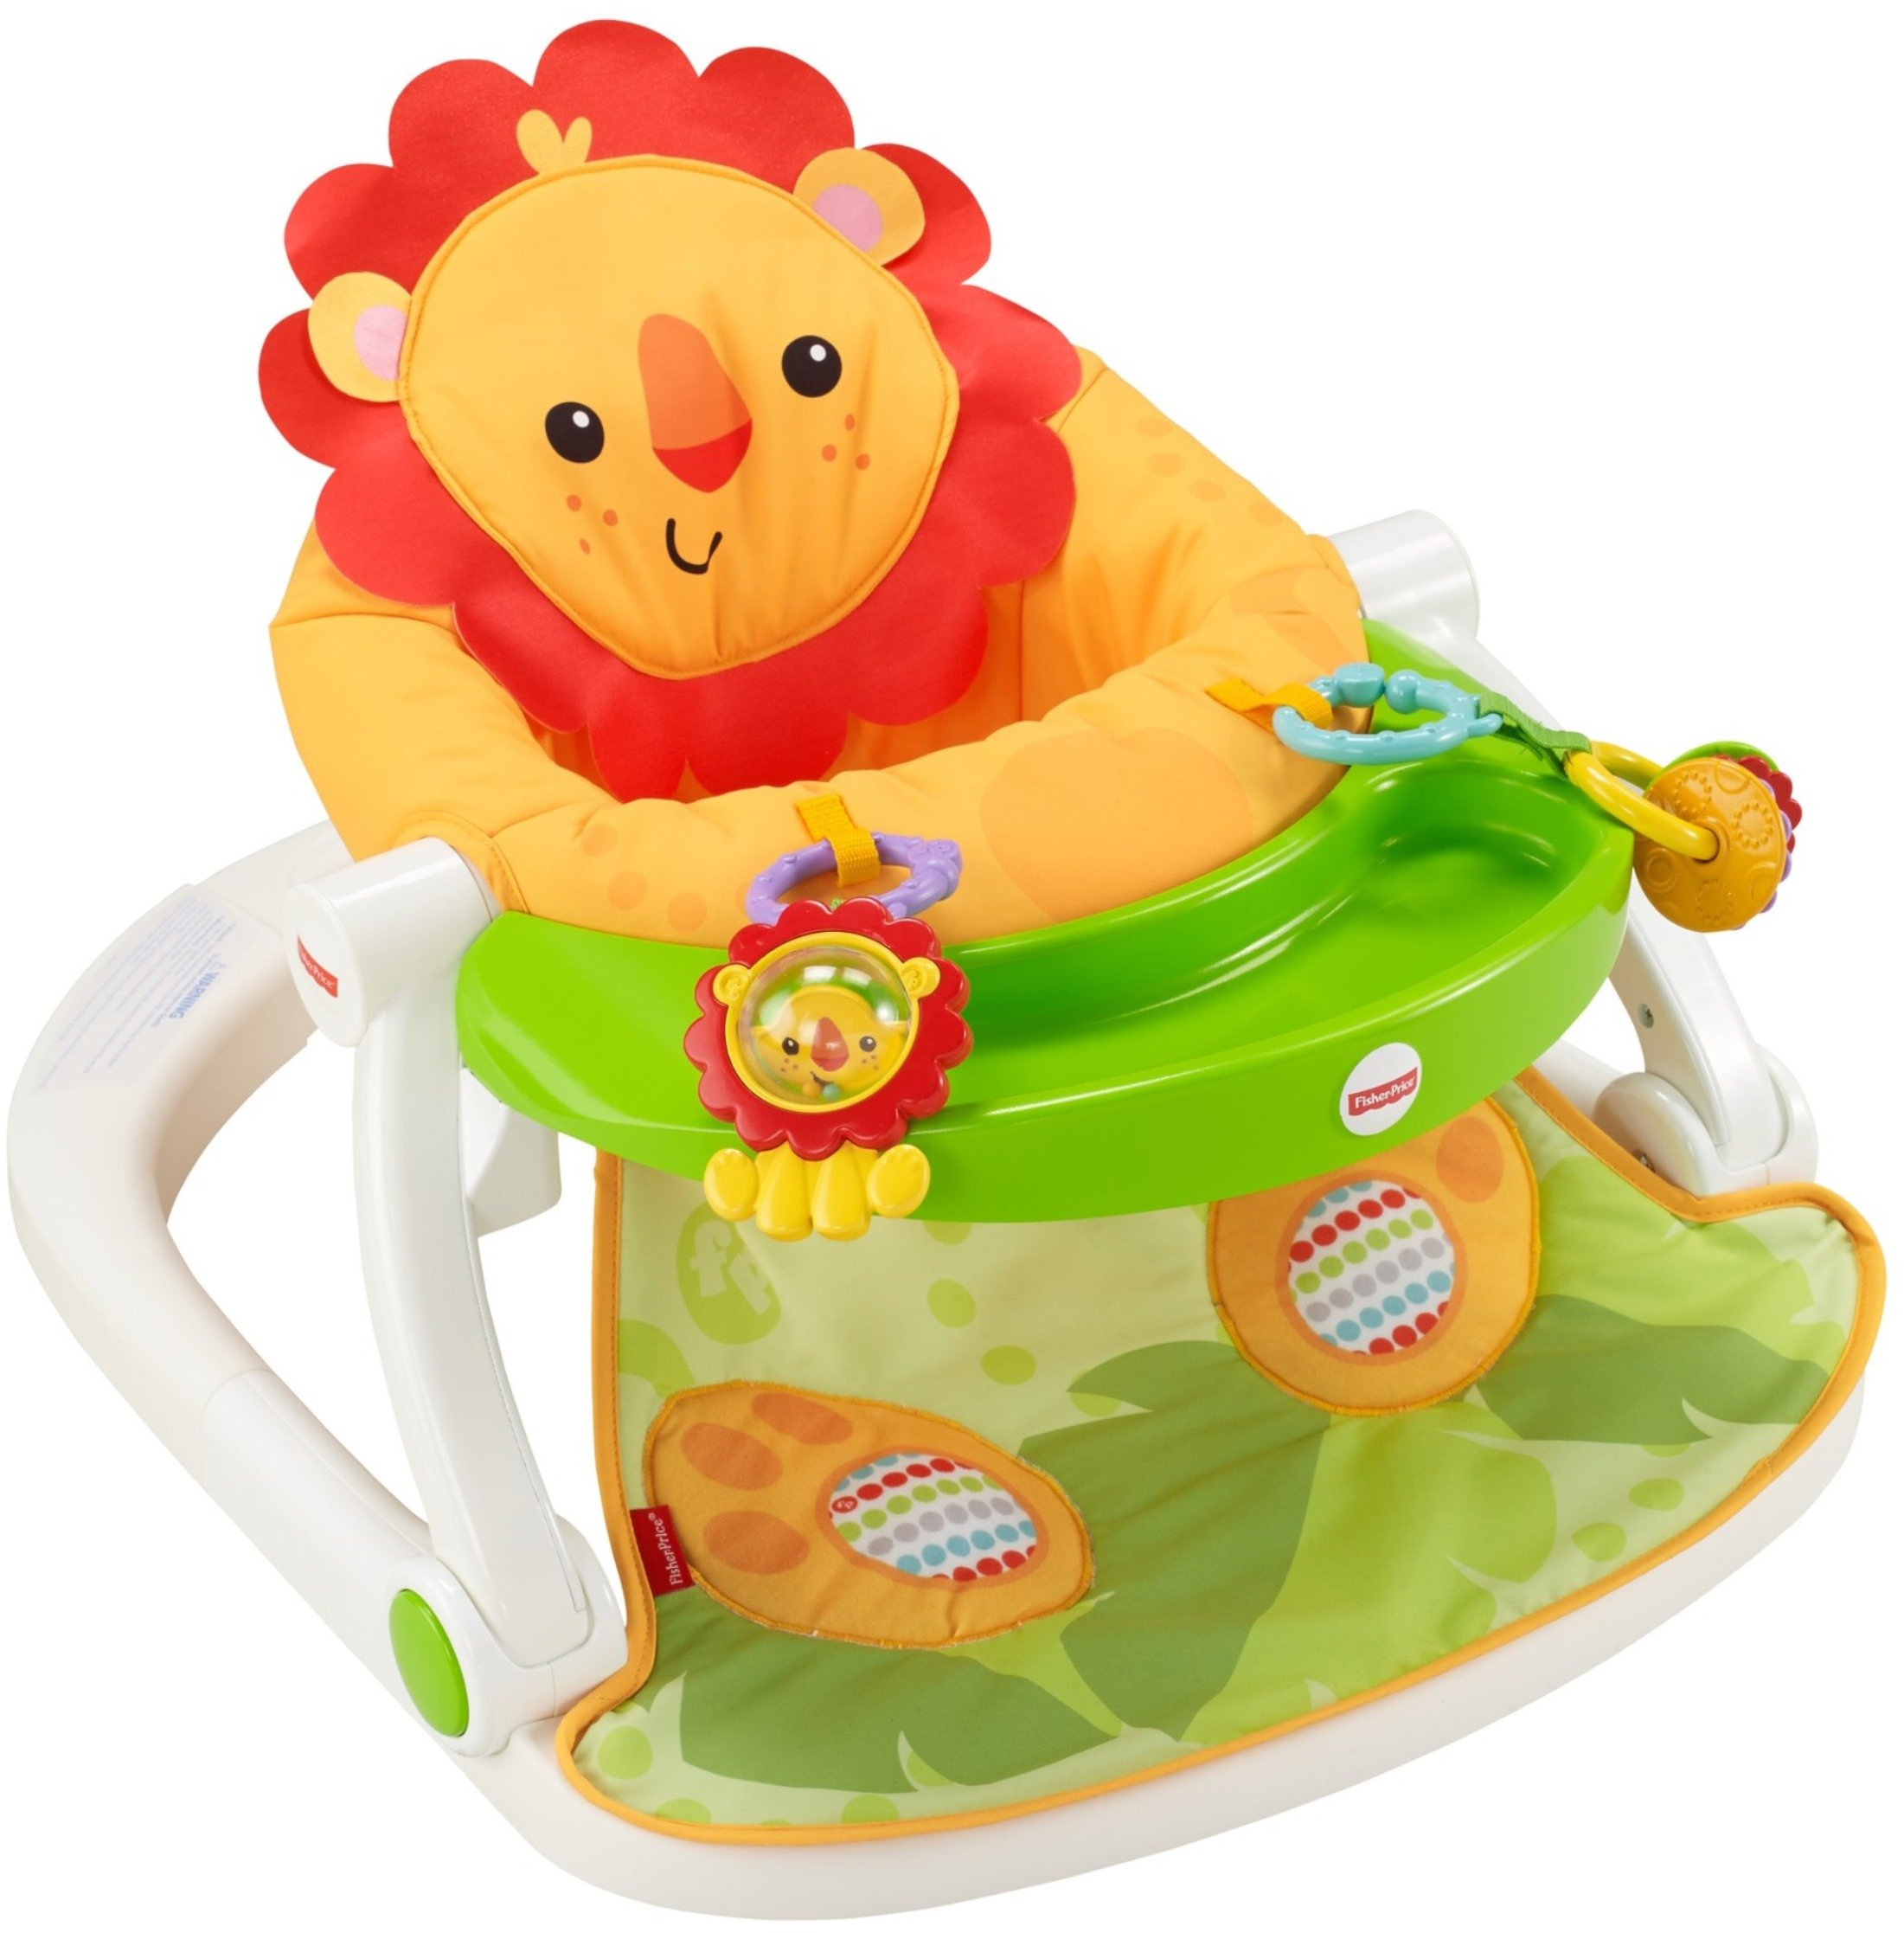 Fisher Price Fun And Fold Bouncer Baby Sweater Pria Nybh Safe Blue Import Sit Me Up Floor Seat With Tray